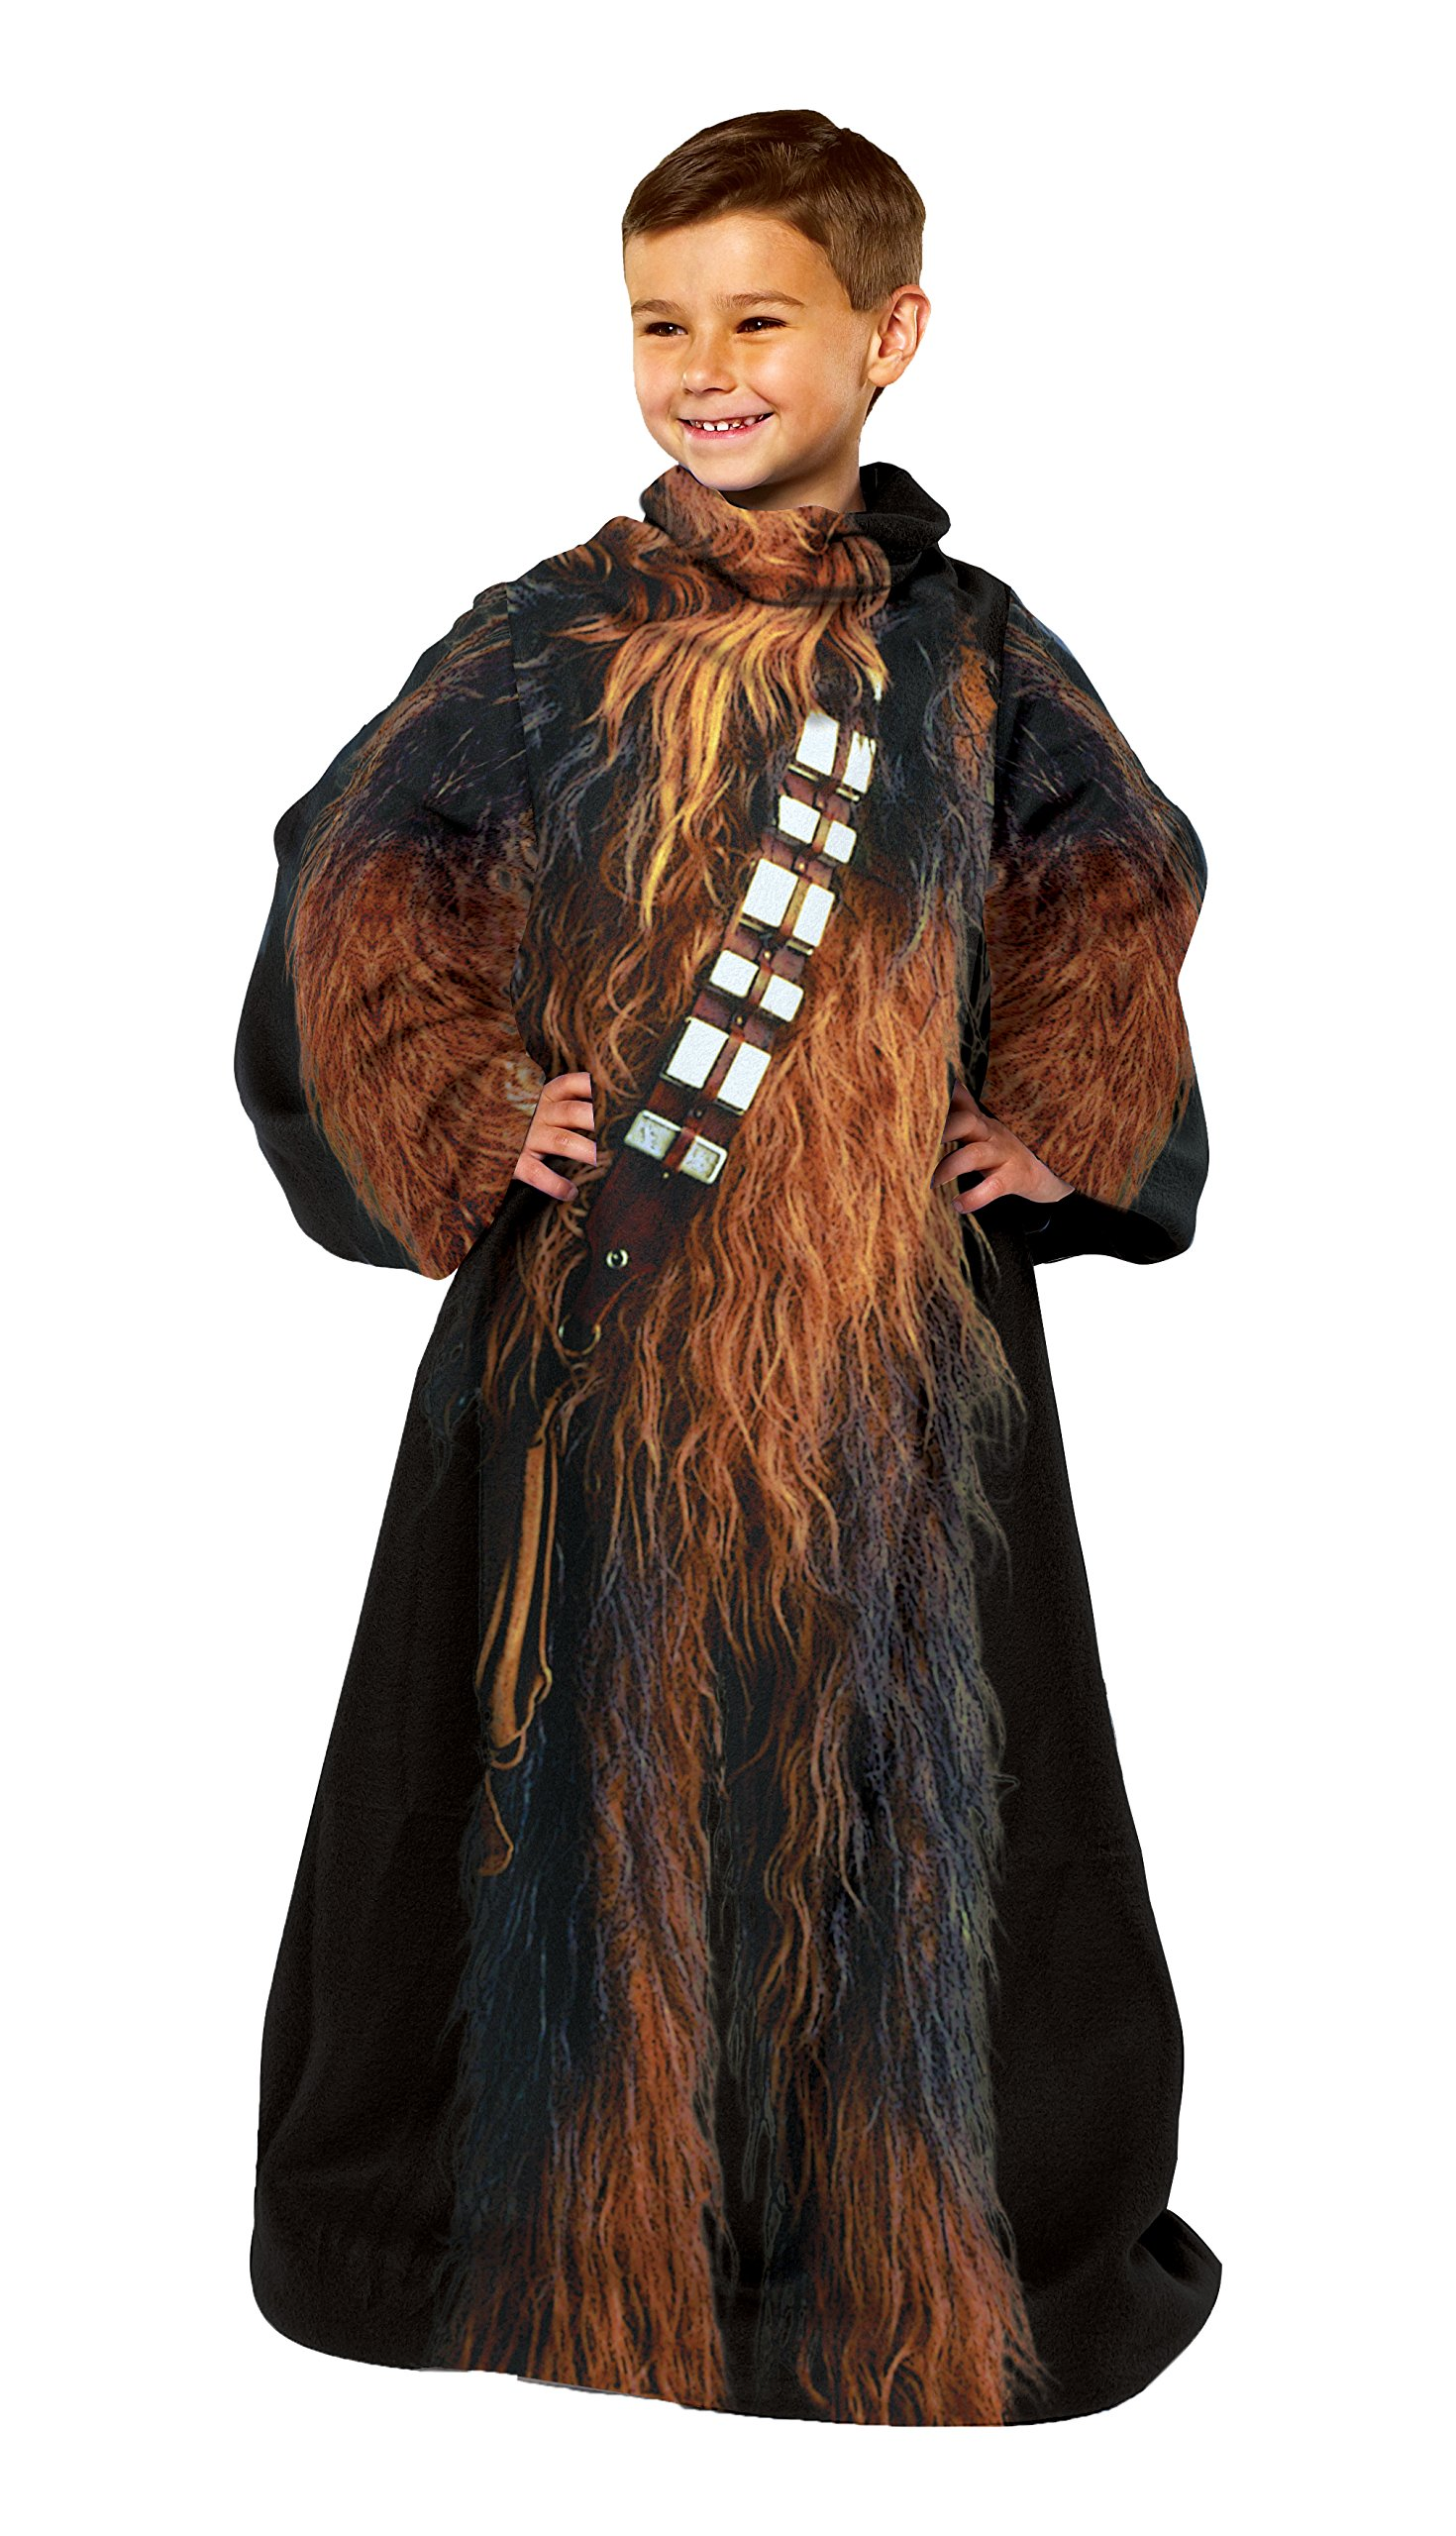 Disney's Star Wars, ''Being Chewbacca'' Youth Fleece Comfy Throw Blanket with Sleeves, 48'' x 48'', Multi Color